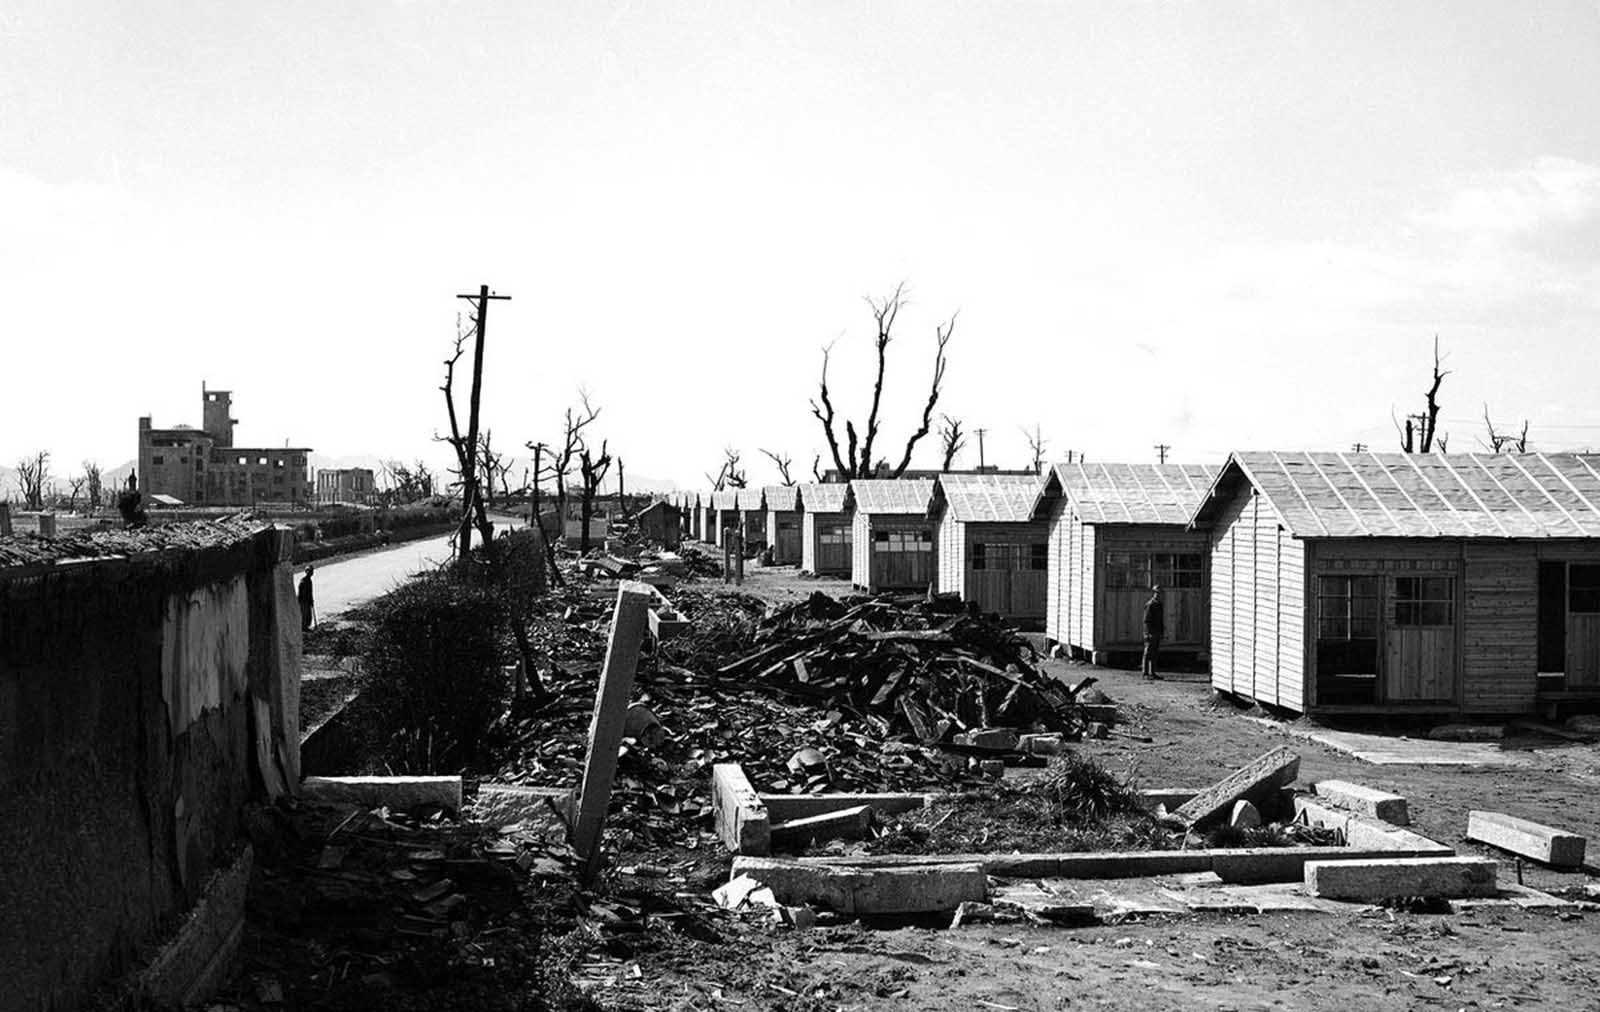 New buildings (right) rise out of the ruins of Hiroshima, Japan, on March 11, 1946. These single story homes built along a hard-surfaced highway are part of the program by the Japanese government to rebuild devastated sections of the country. At left background are damaged buildings whose masonry withstood the effects of the first atomic bomb ever detonated as a weapon.